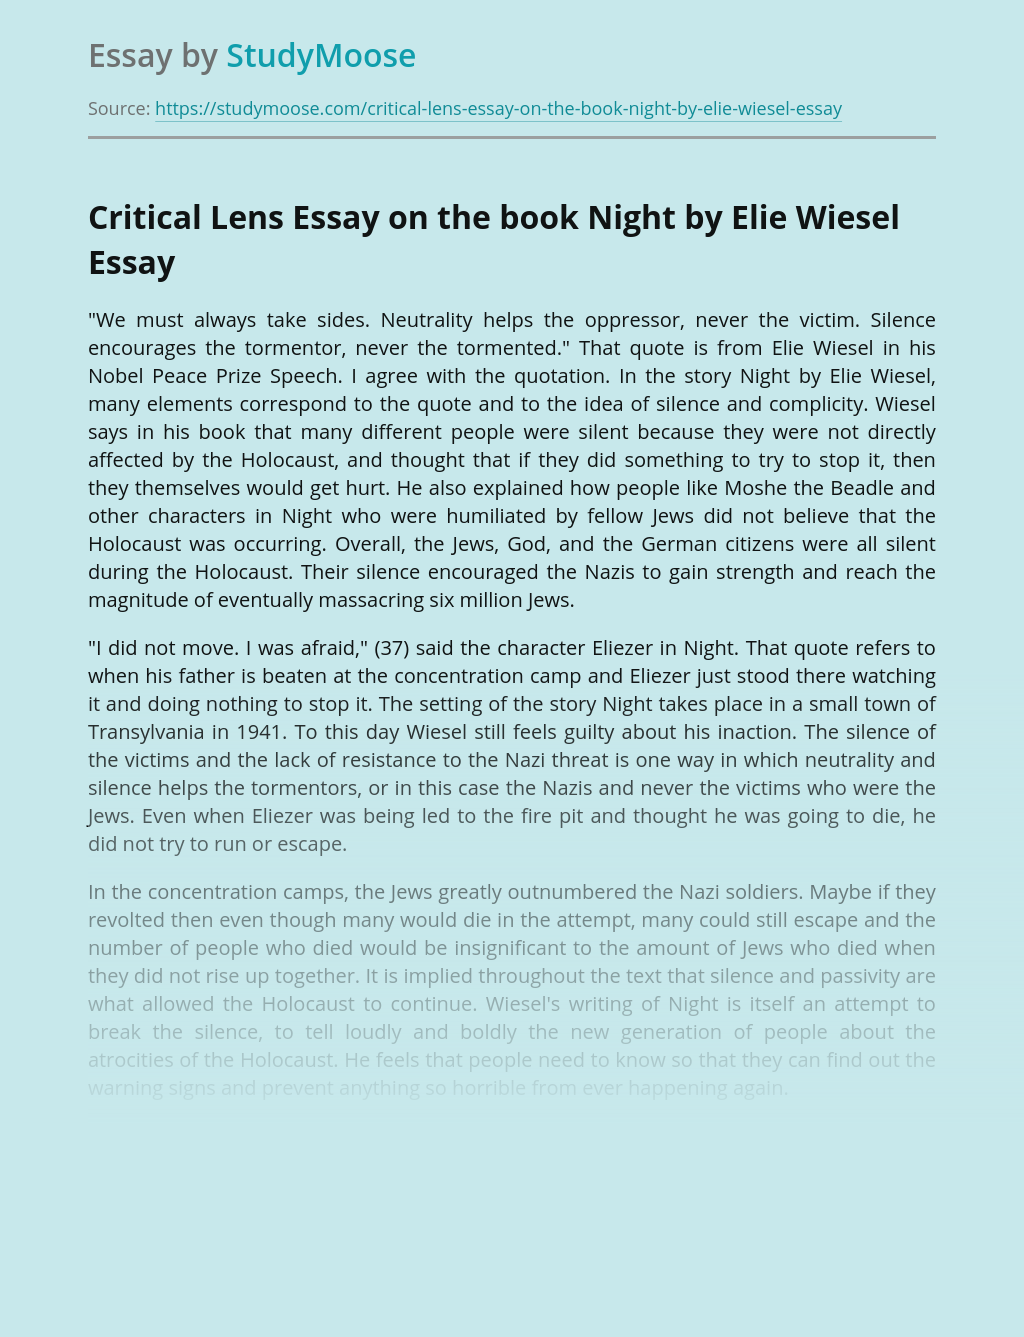 Critical Lens Essay on the book Night by Elie Wiesel